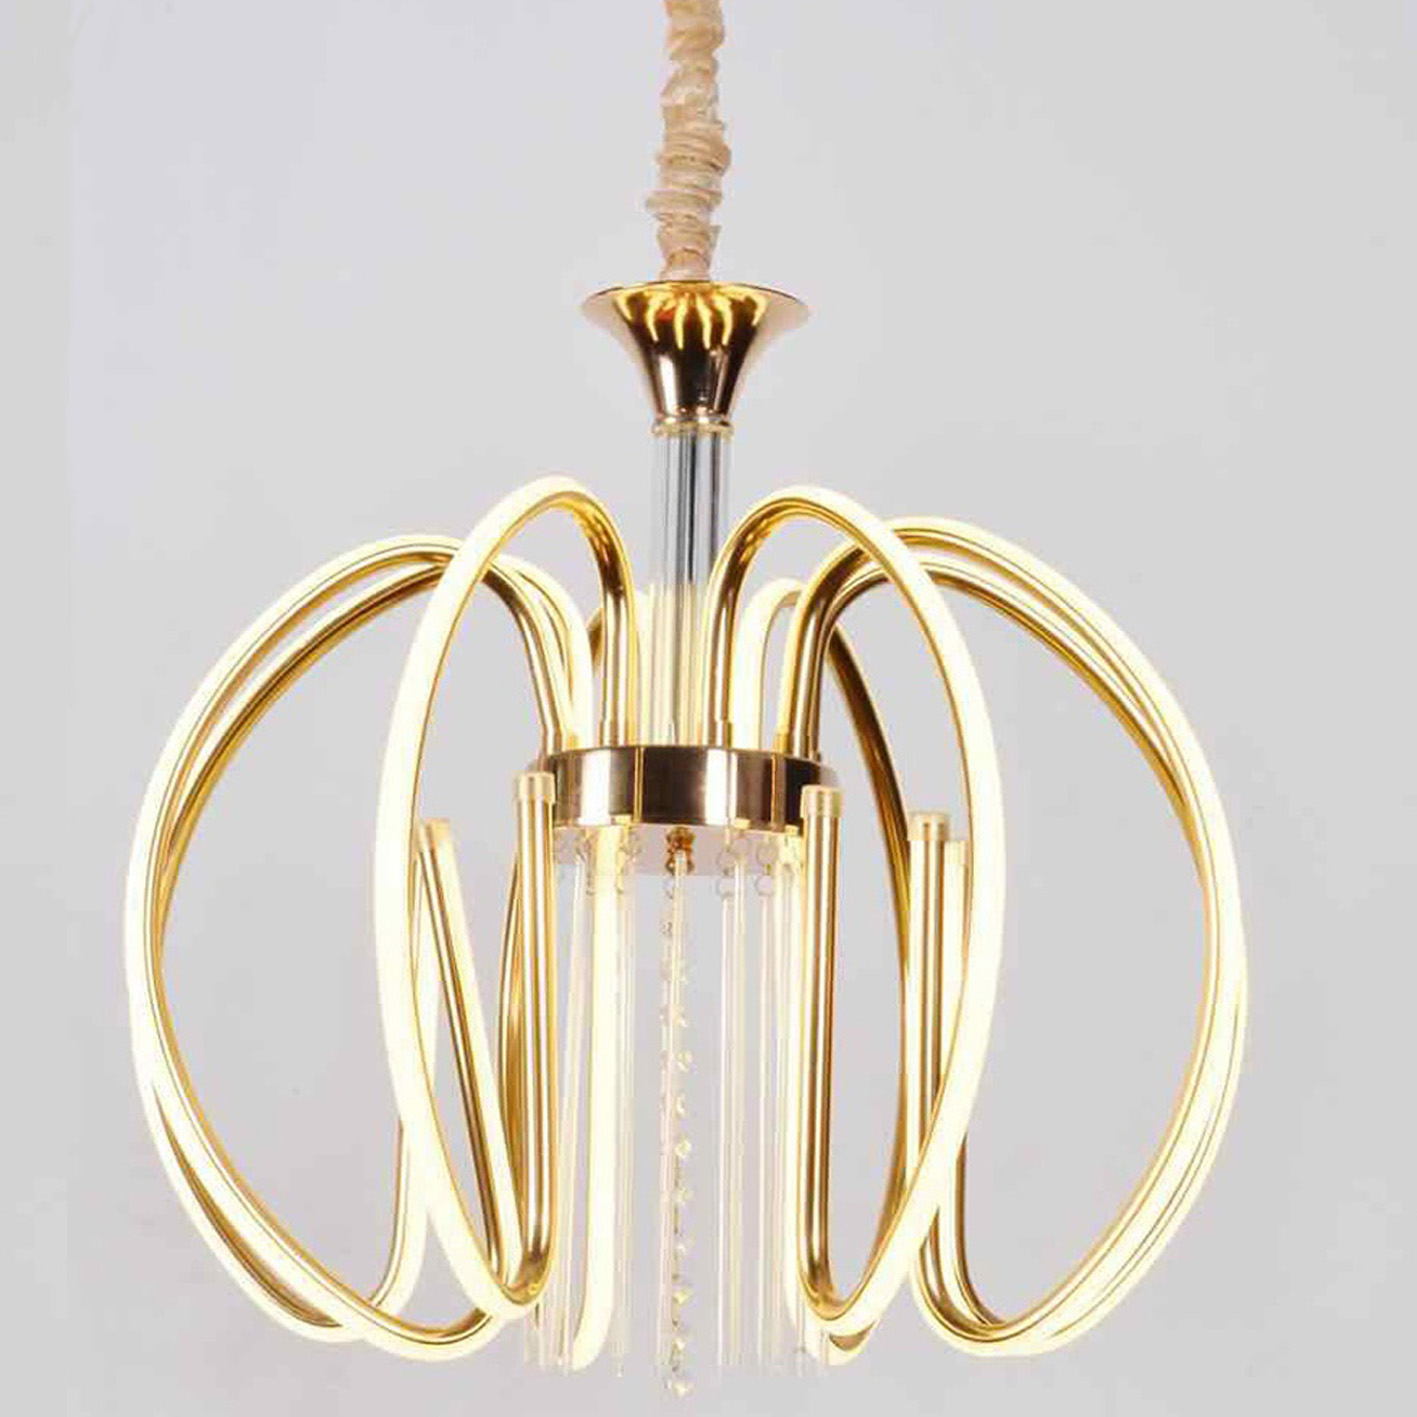 Chandelier 8 Arms 120w polycarbonate gold LED 4200k integrated 2069